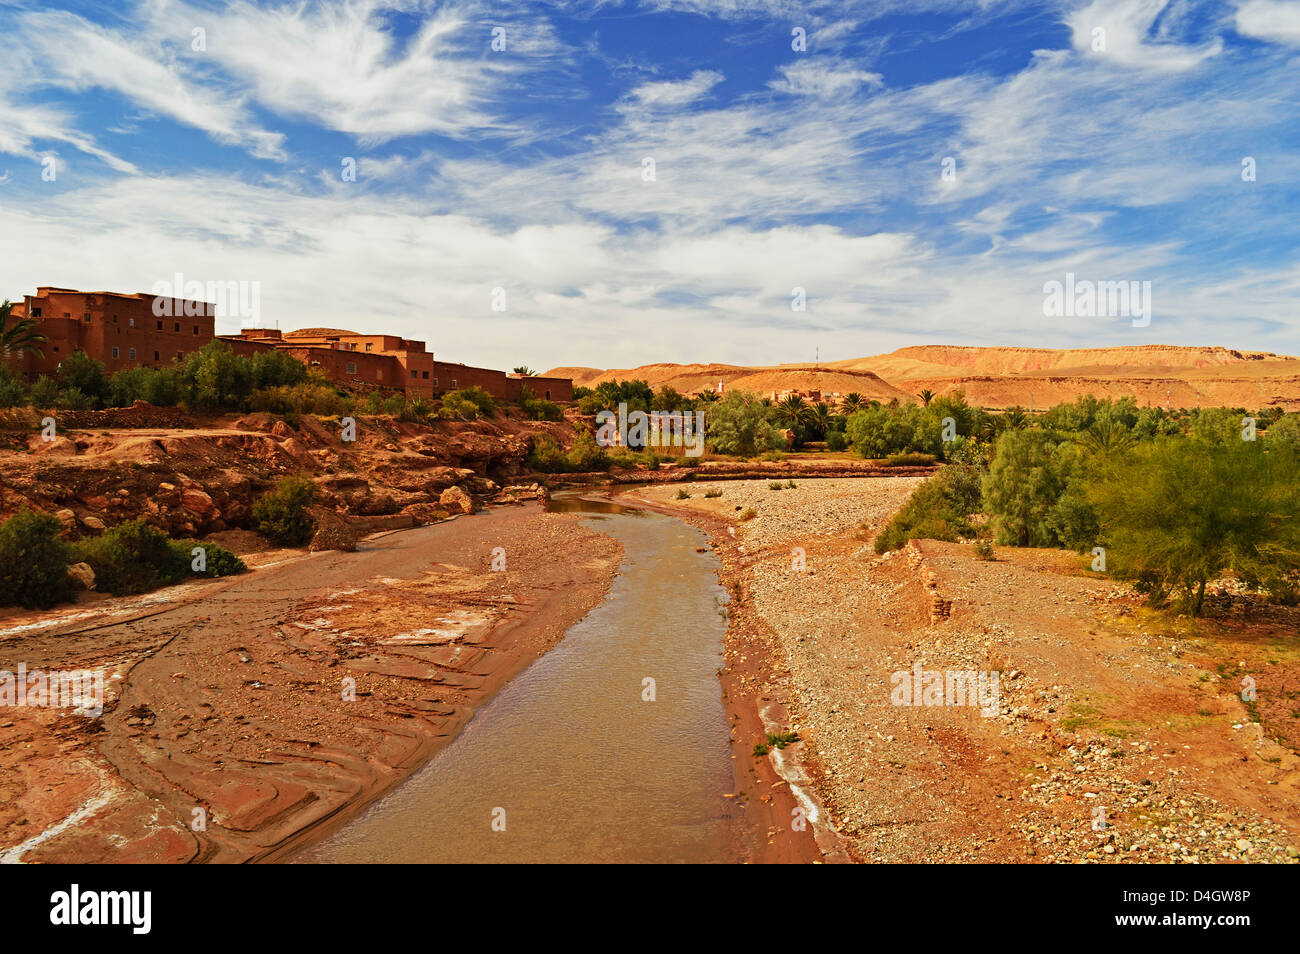 River, Ait-Benhaddou, Morocco, North Africa - Stock Image